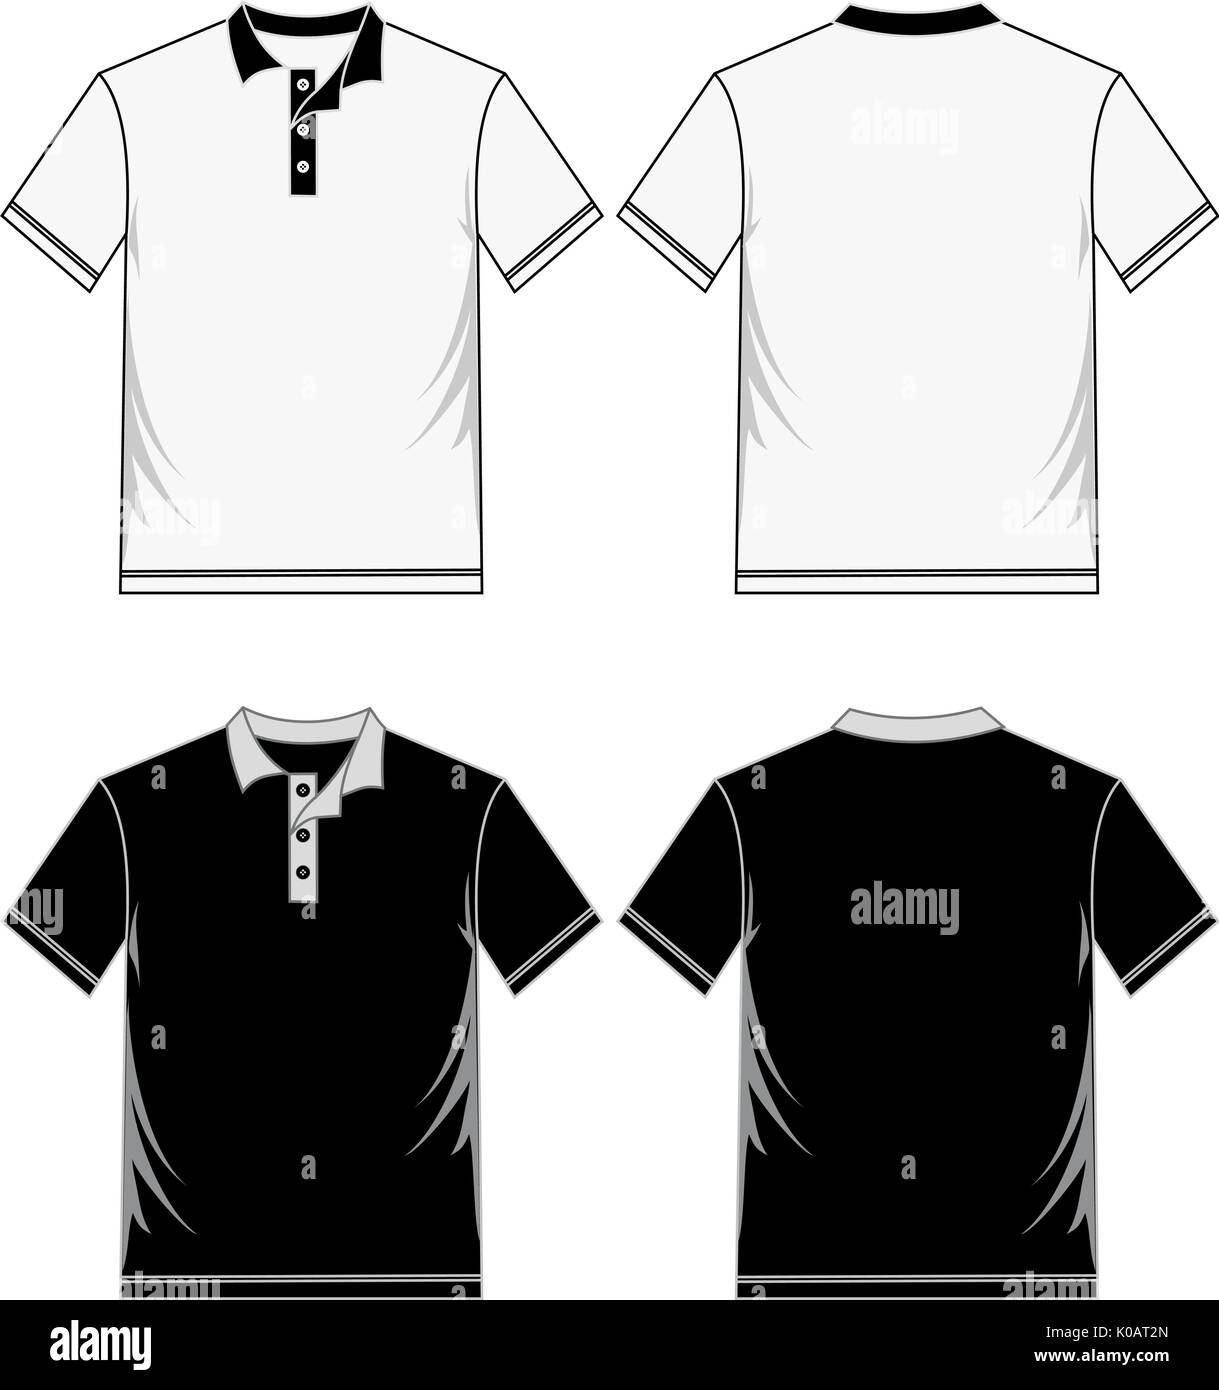 Shirt Template Black White Vector Image Stock Vector Art